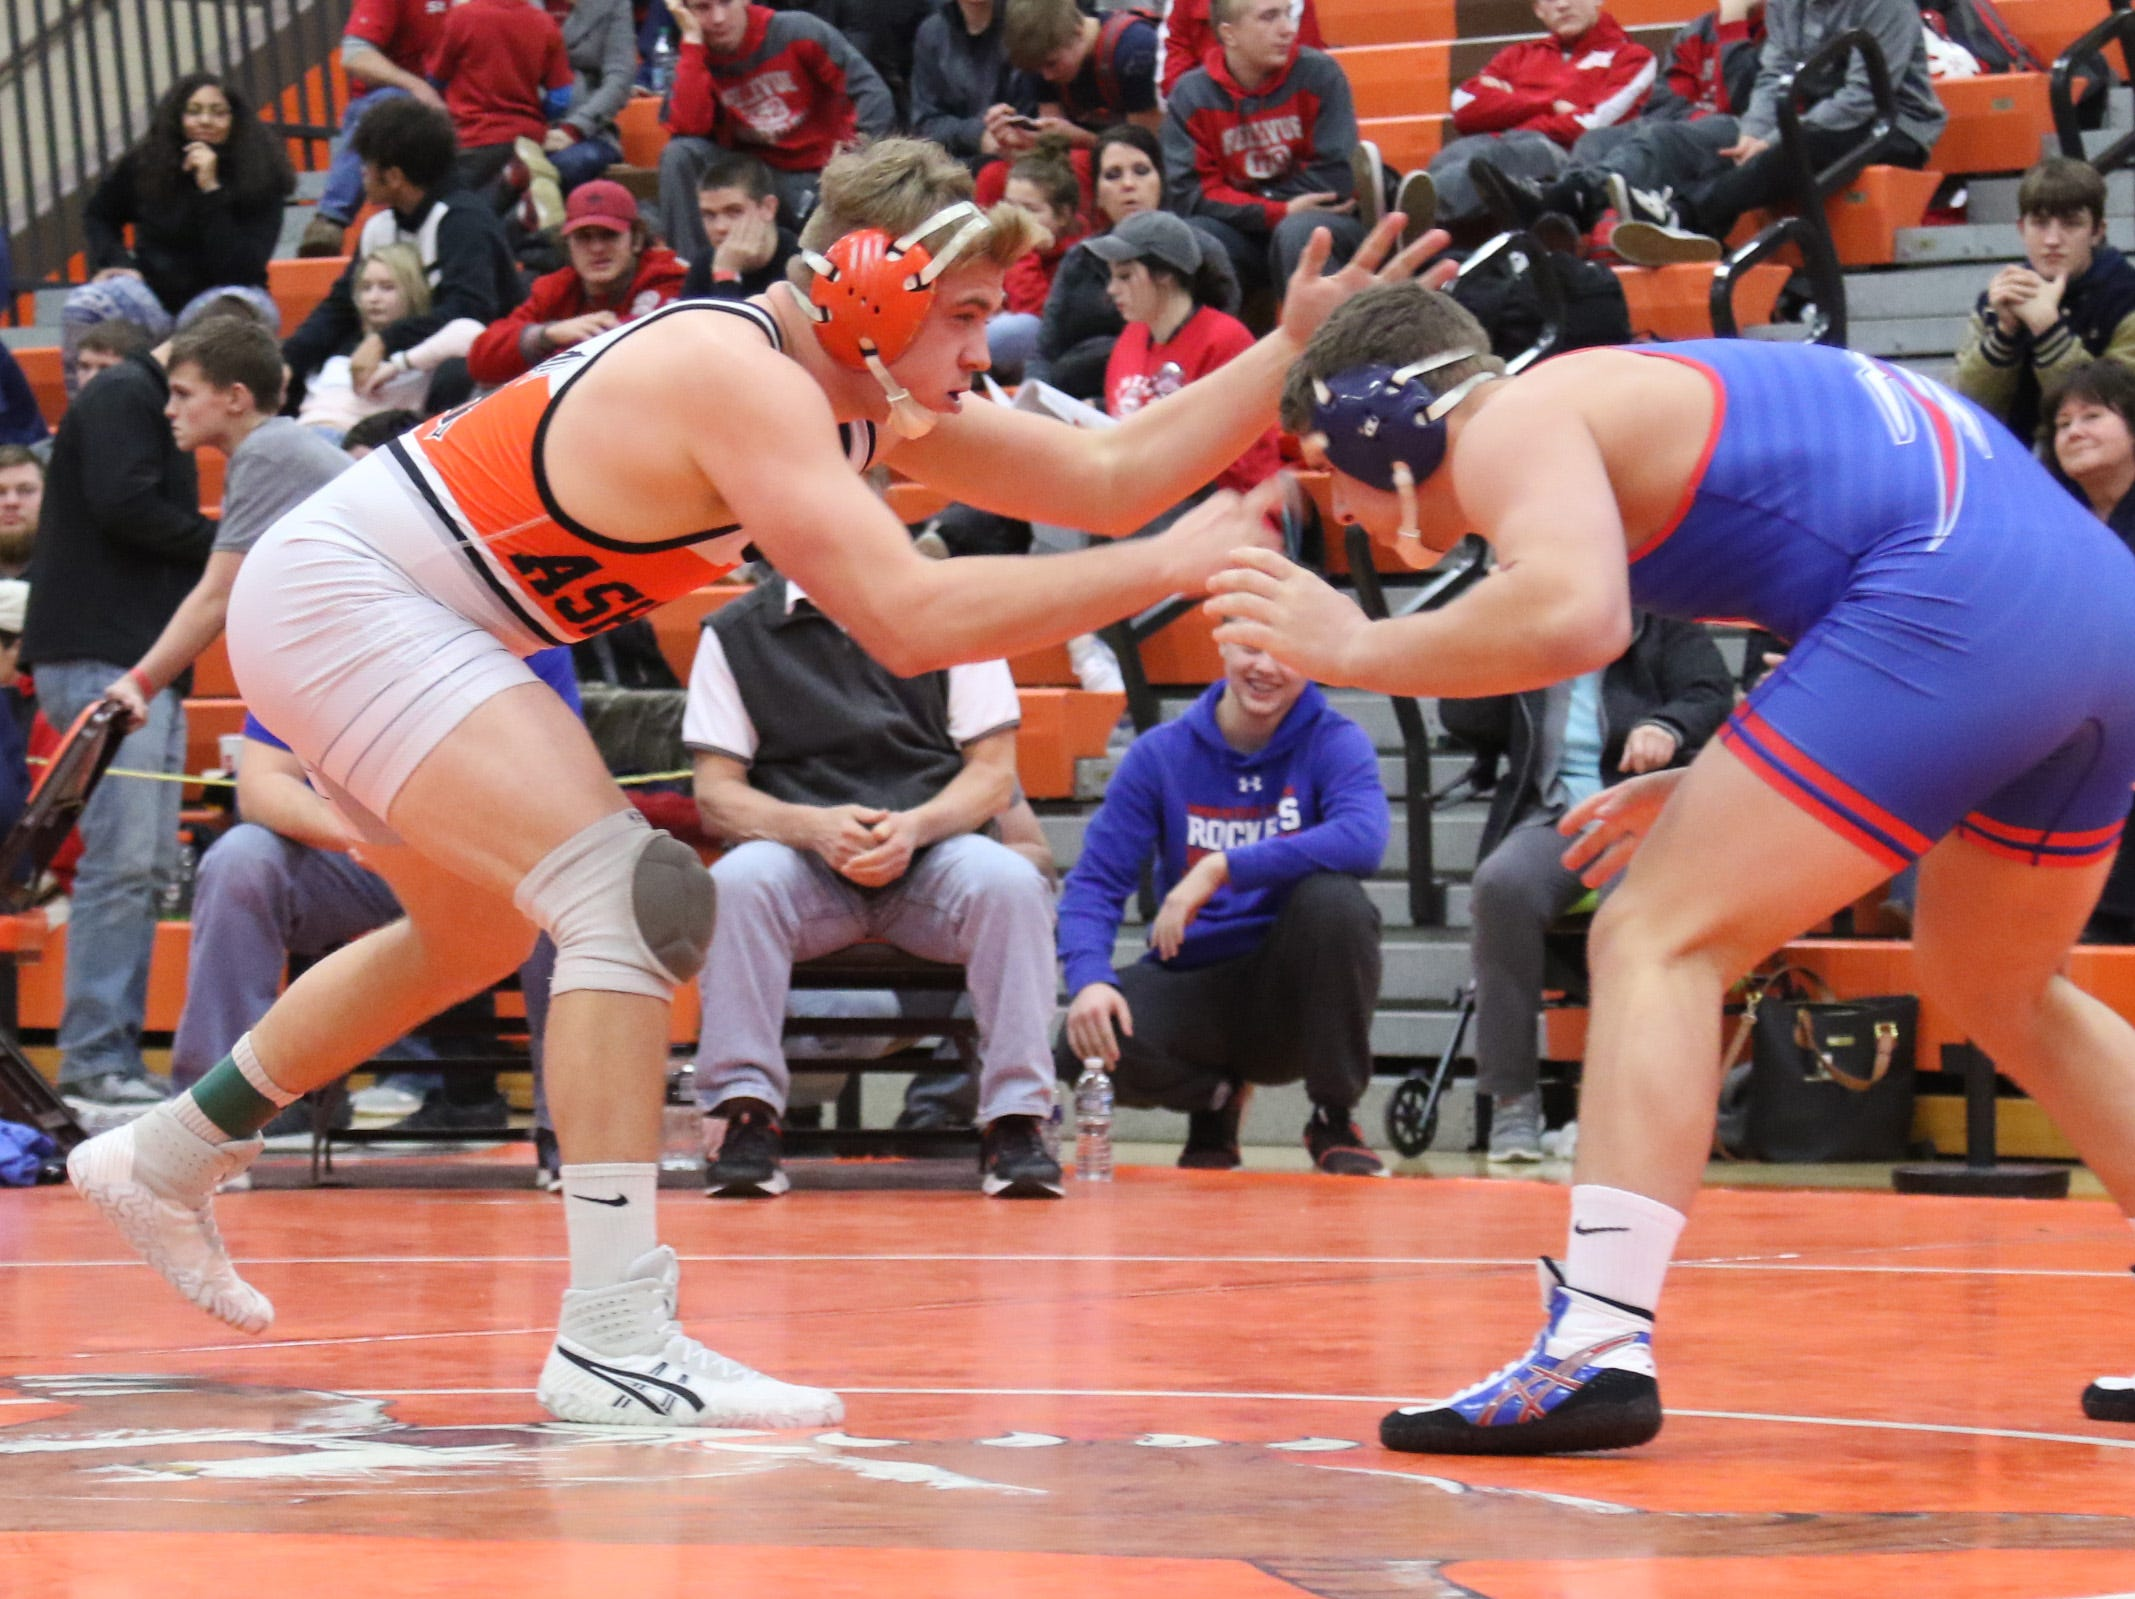 Ashland's Tristian Pitz spars with Bay's Matt Cover during the final matches at the JC Gorman Wrestling Tournament on Saturday.